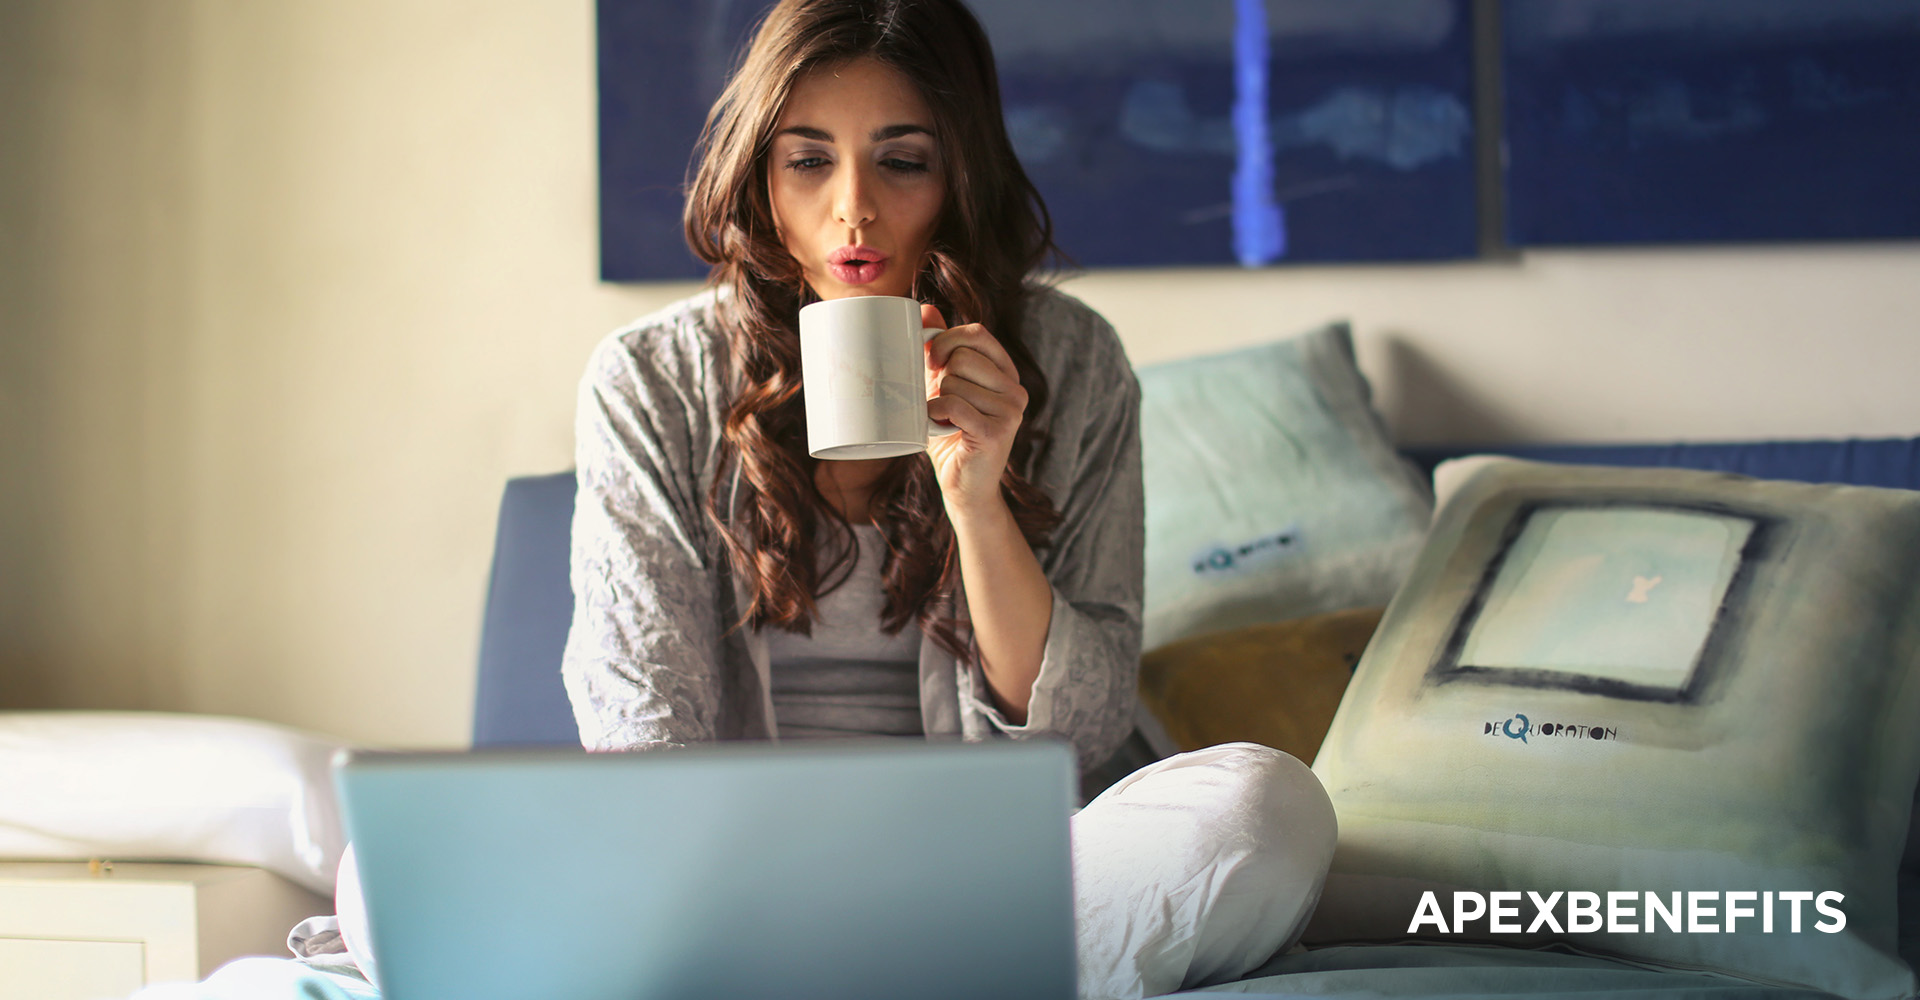 Wellness Wednesday: Staying Connected Working From Home